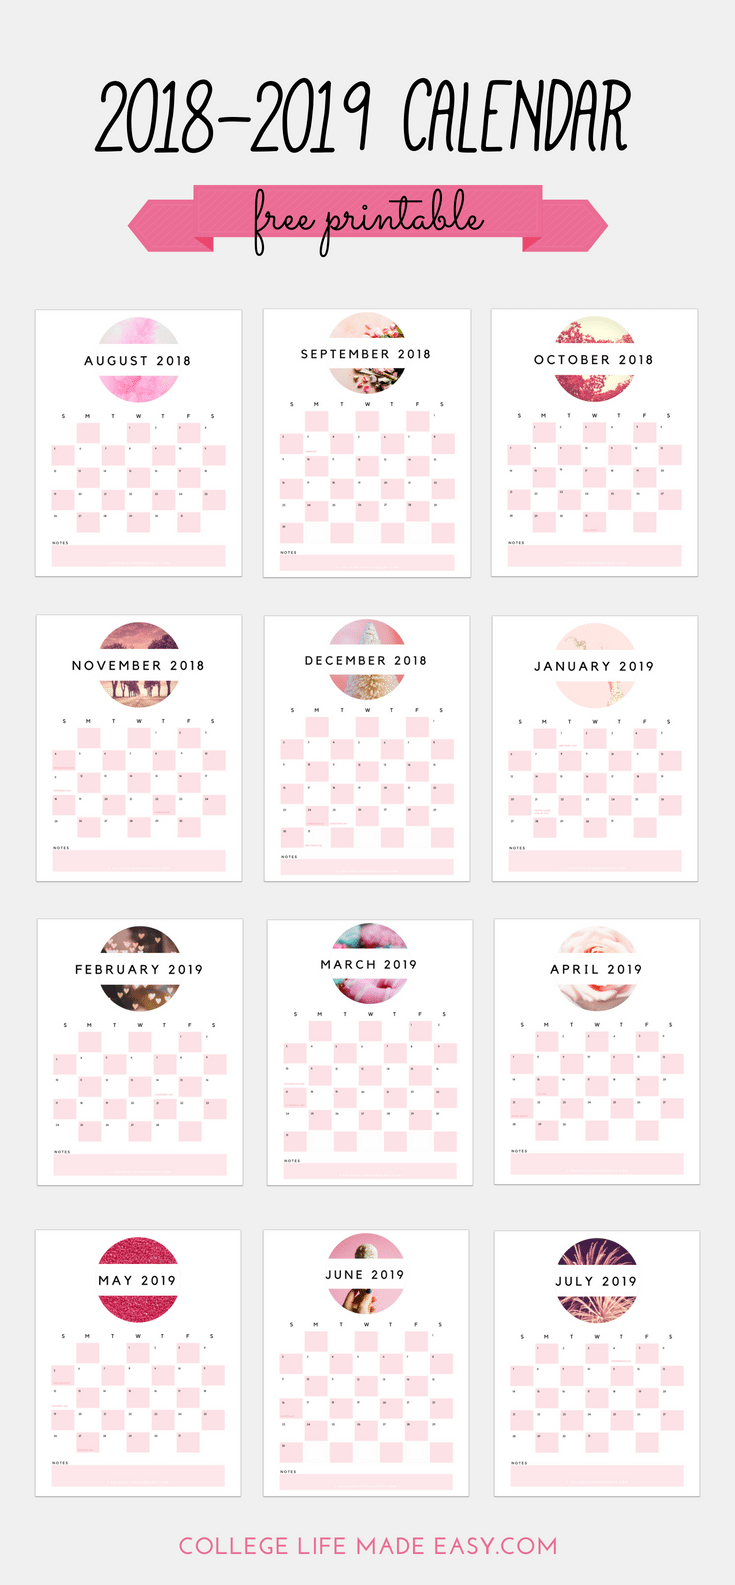 Free 2018 - 2019 Printable Calendar (Cute & In Soft Pink!) with Blank Calendar Months For Year 2019-2020 Girly